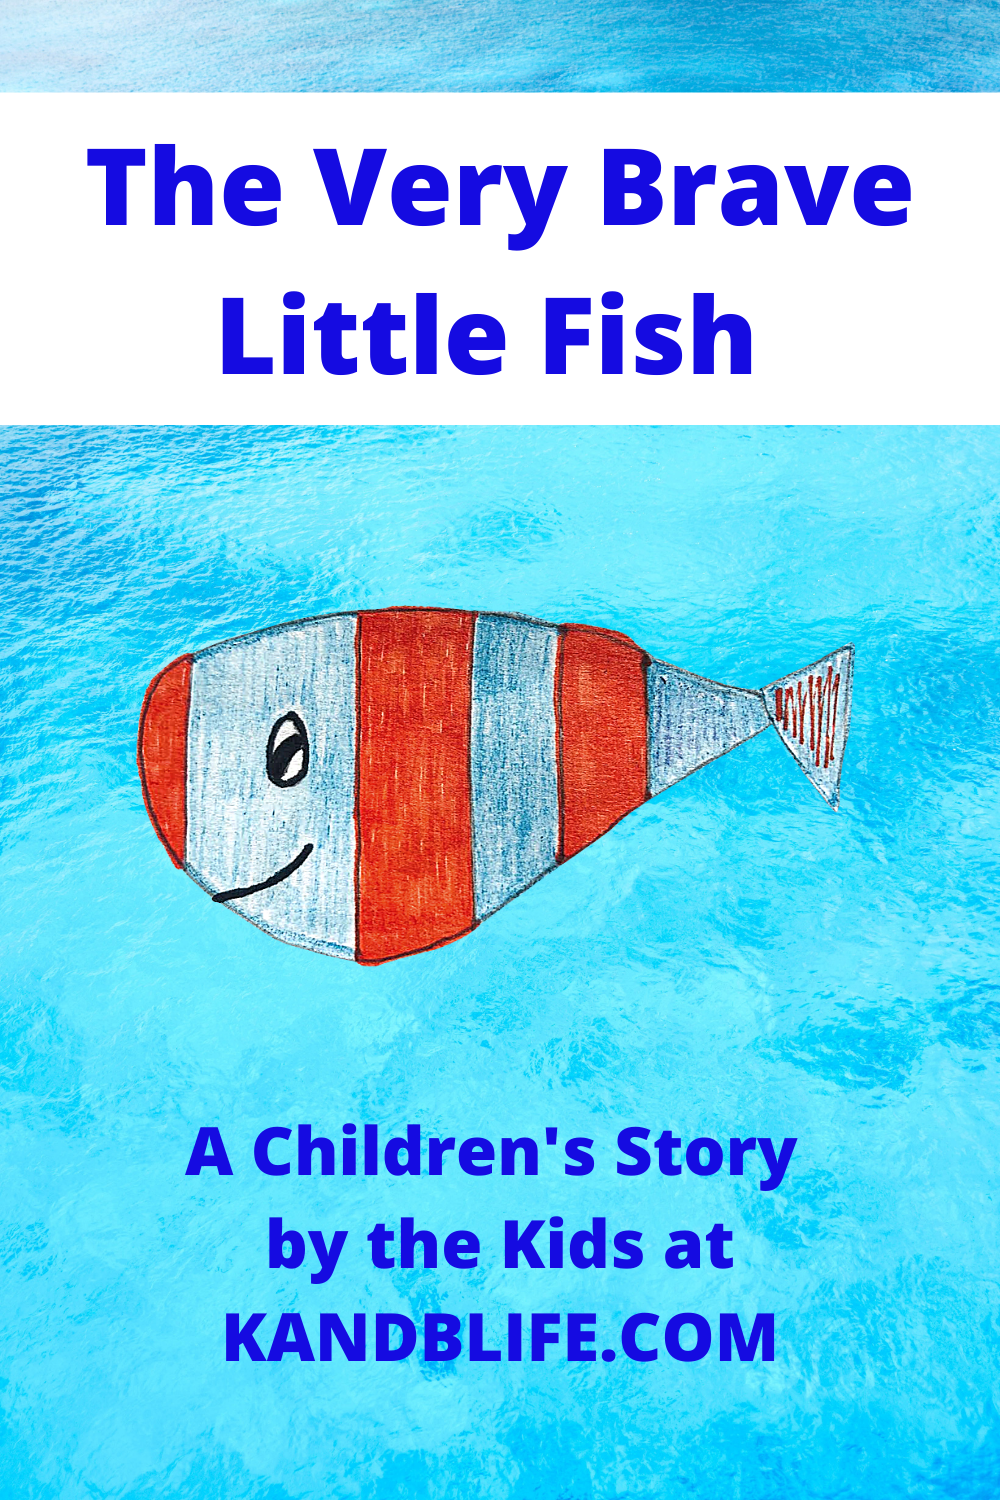 A children's Story cover for The Very Brave Little Fish